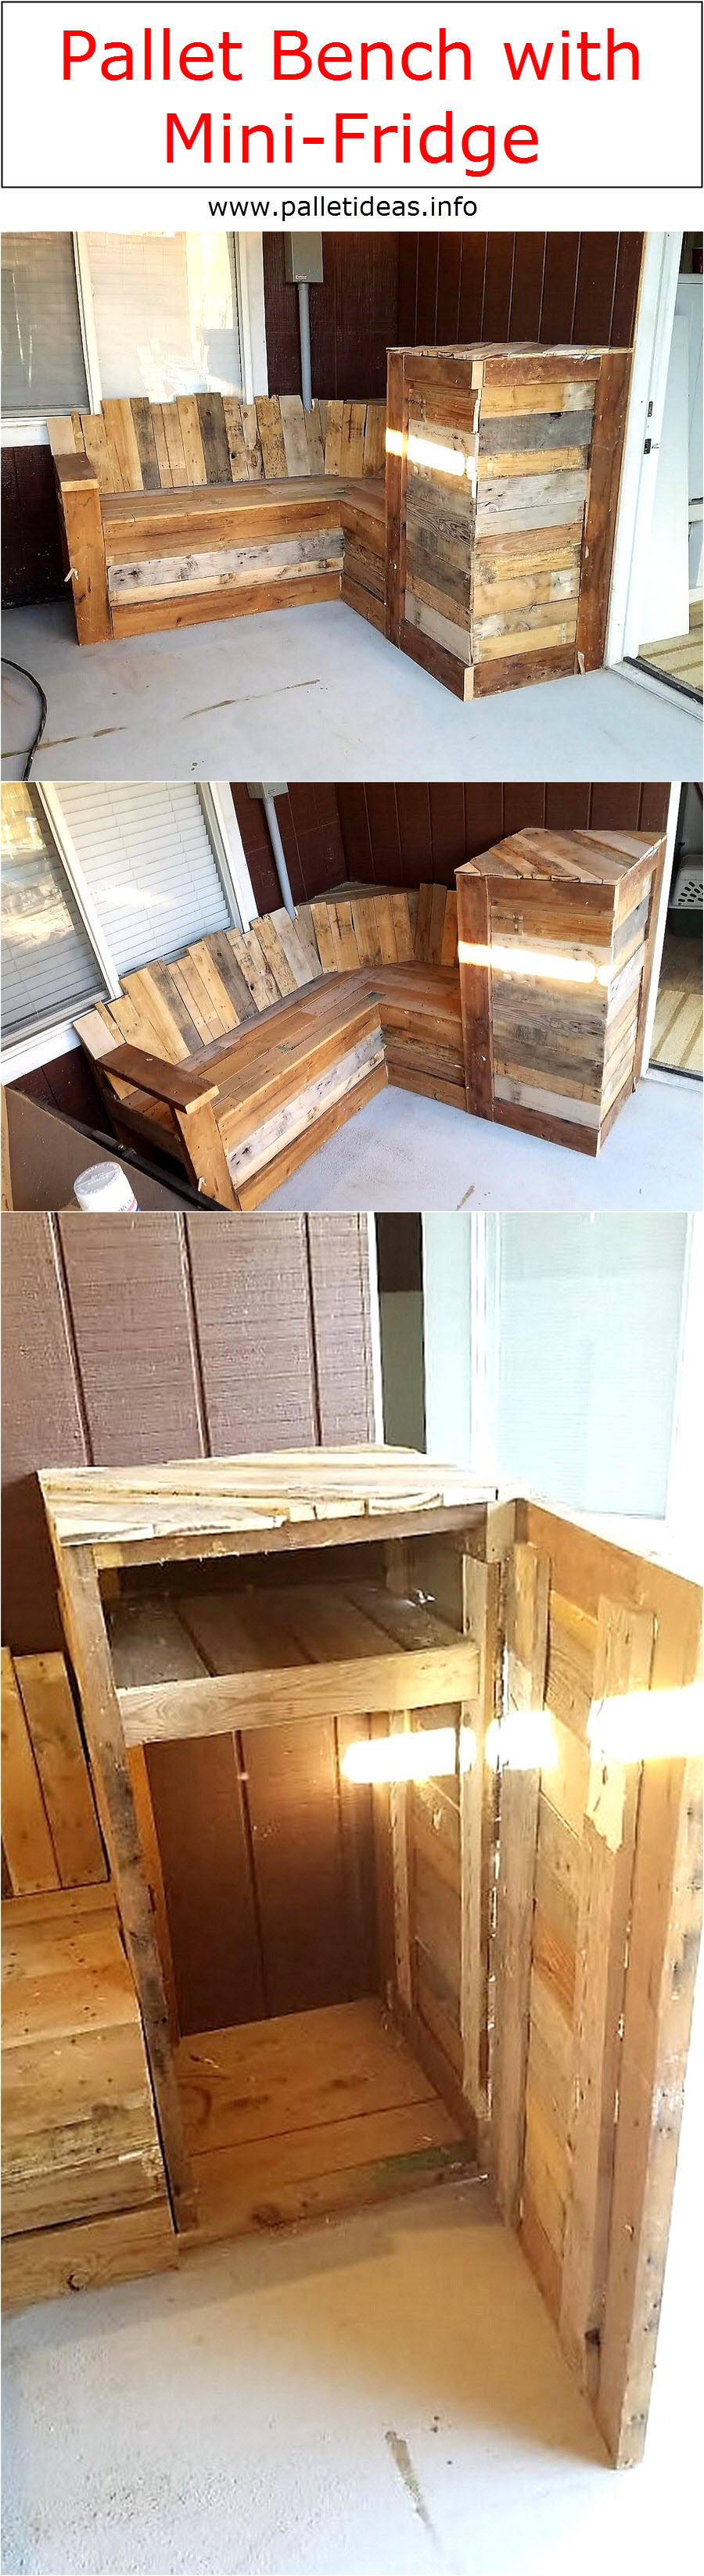 pallet-bench-with-mini-fridge